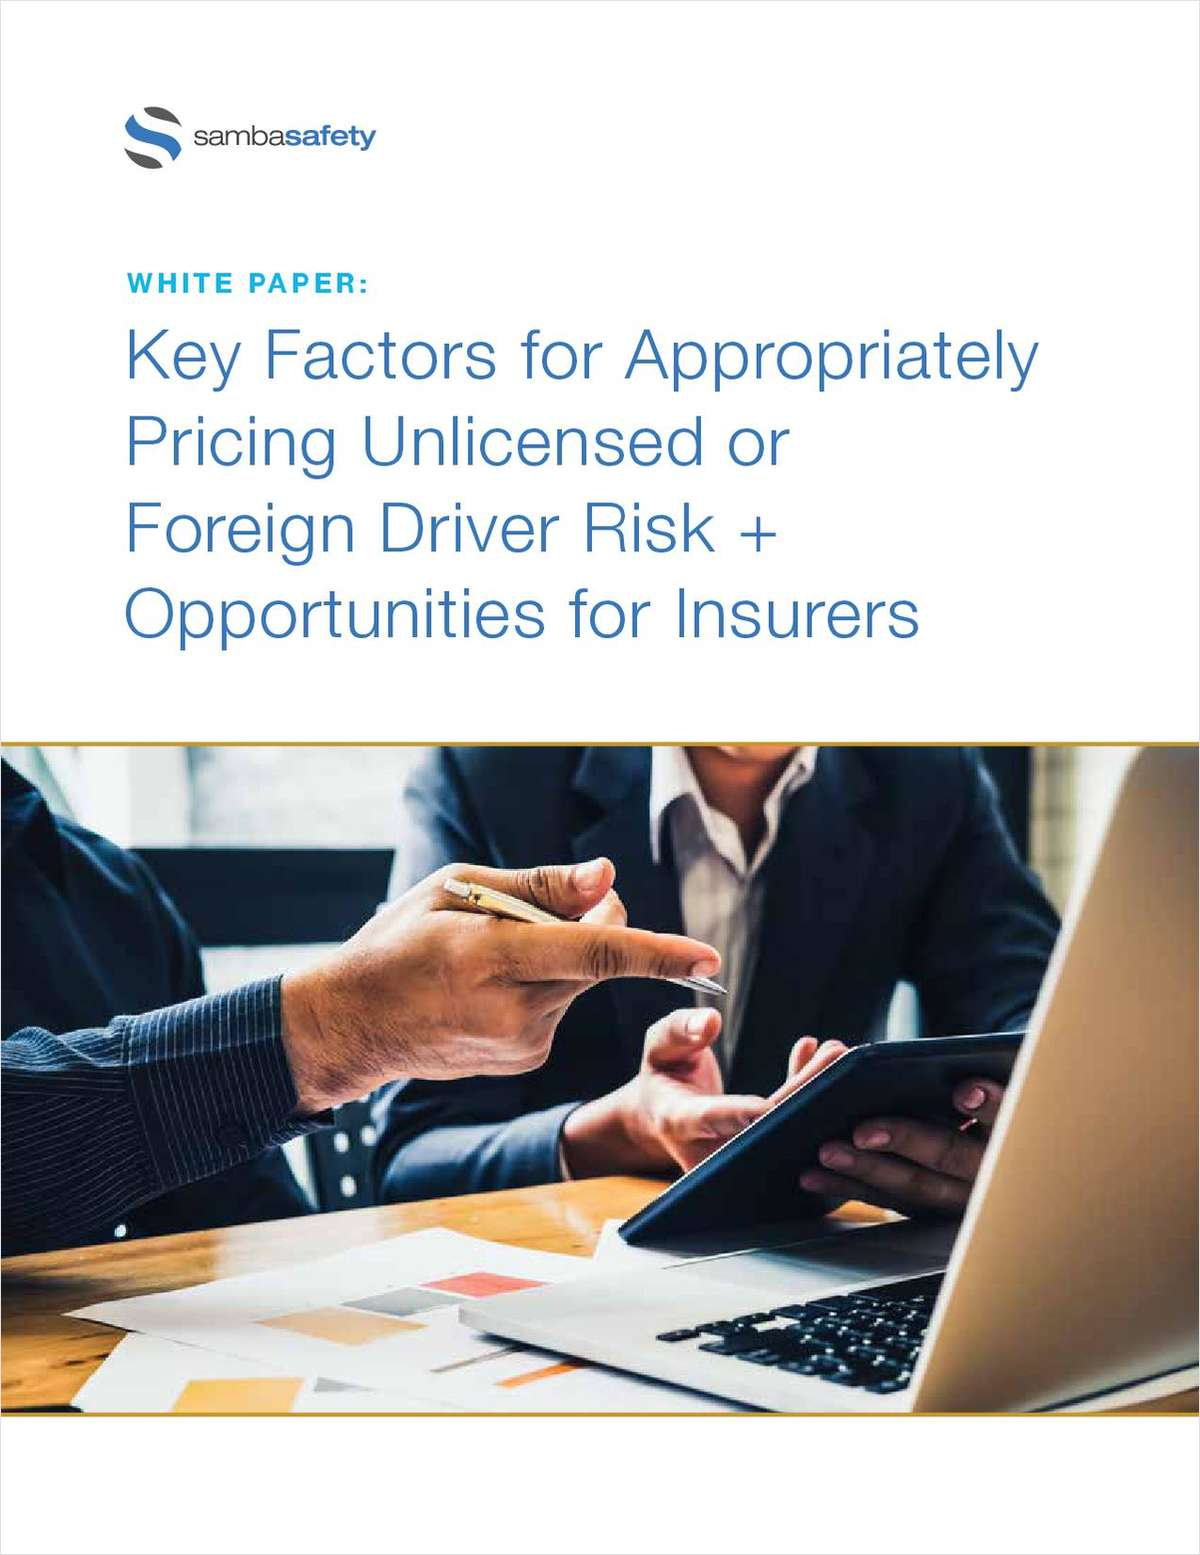 Key Factors for Appropriately Pricing Unlicensed or Foreign Driver Risk + Opportunities for Insurers